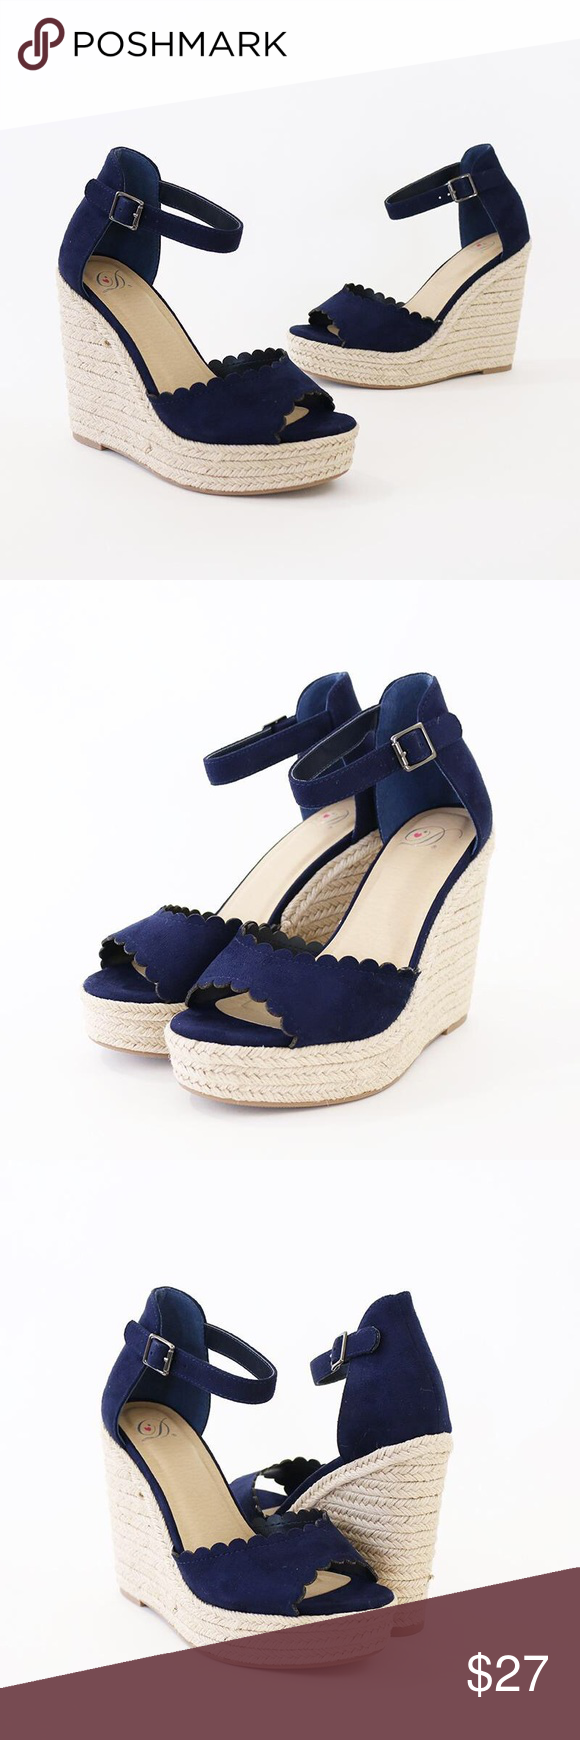 84eea1ee5f0 herald navy espadrille wedge sandal Scalloped Topline Ankle Strap with  Pewter Buckle Wedge Espadrille Sandal.